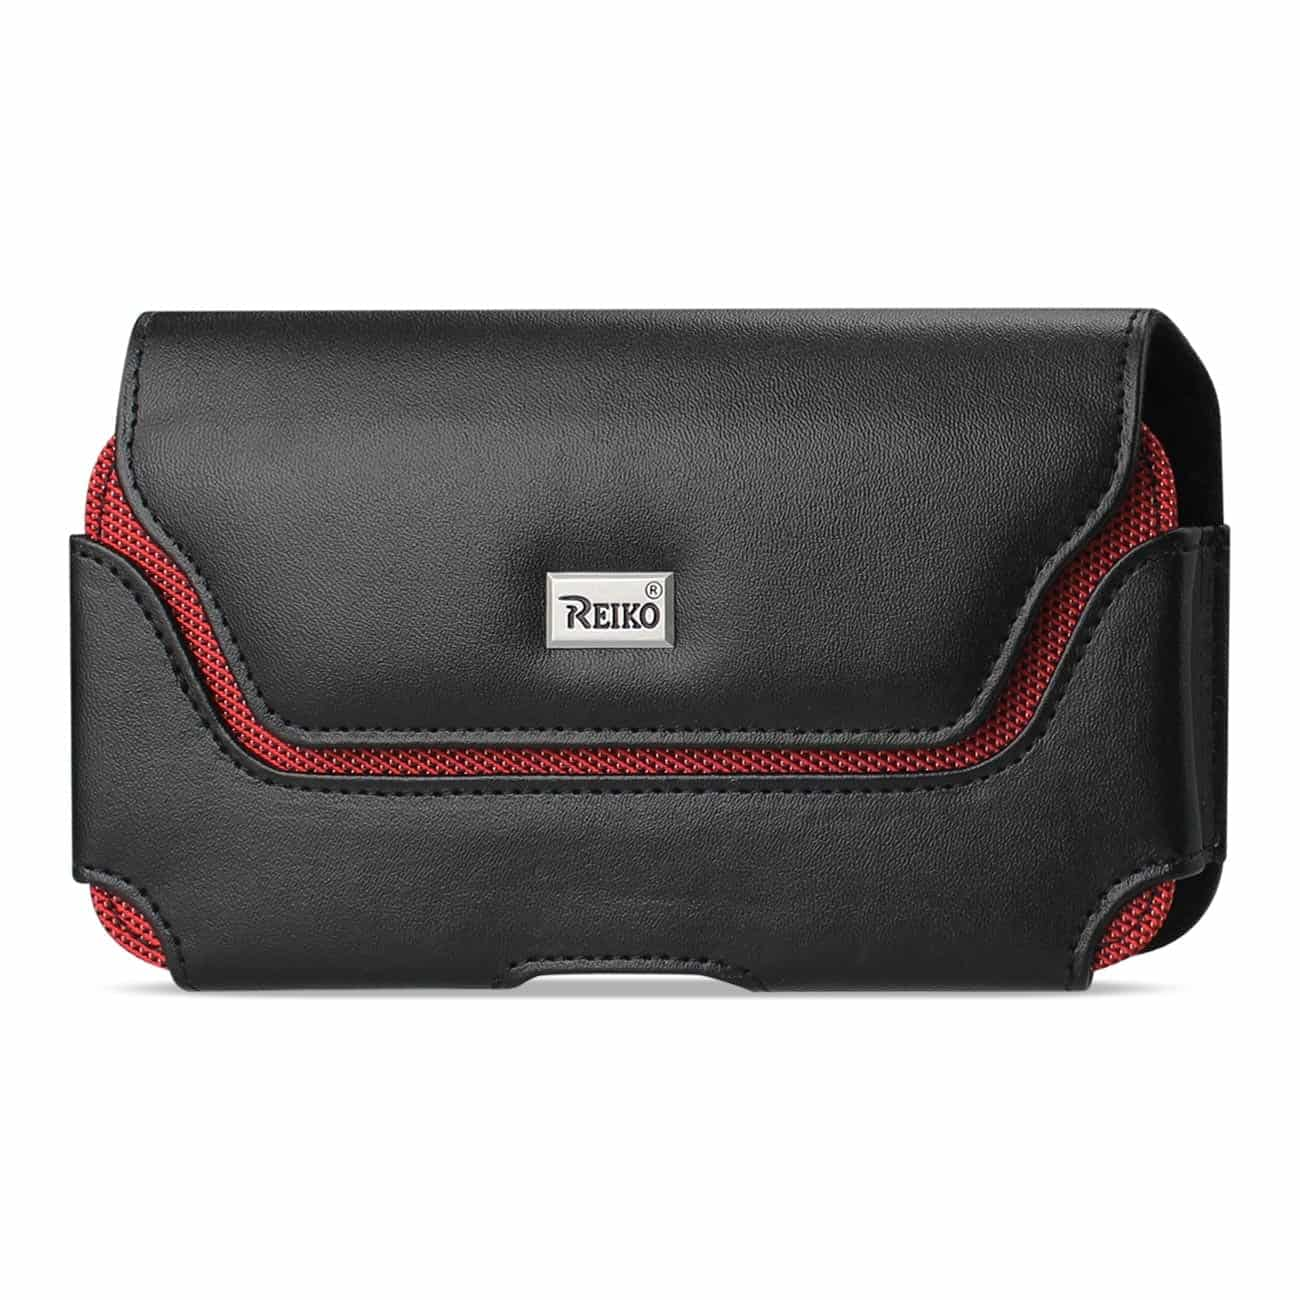 Horizontal Leather Pouch With Red Bee Nest Interior In Black (5.8X3.0X0.7 Inches)